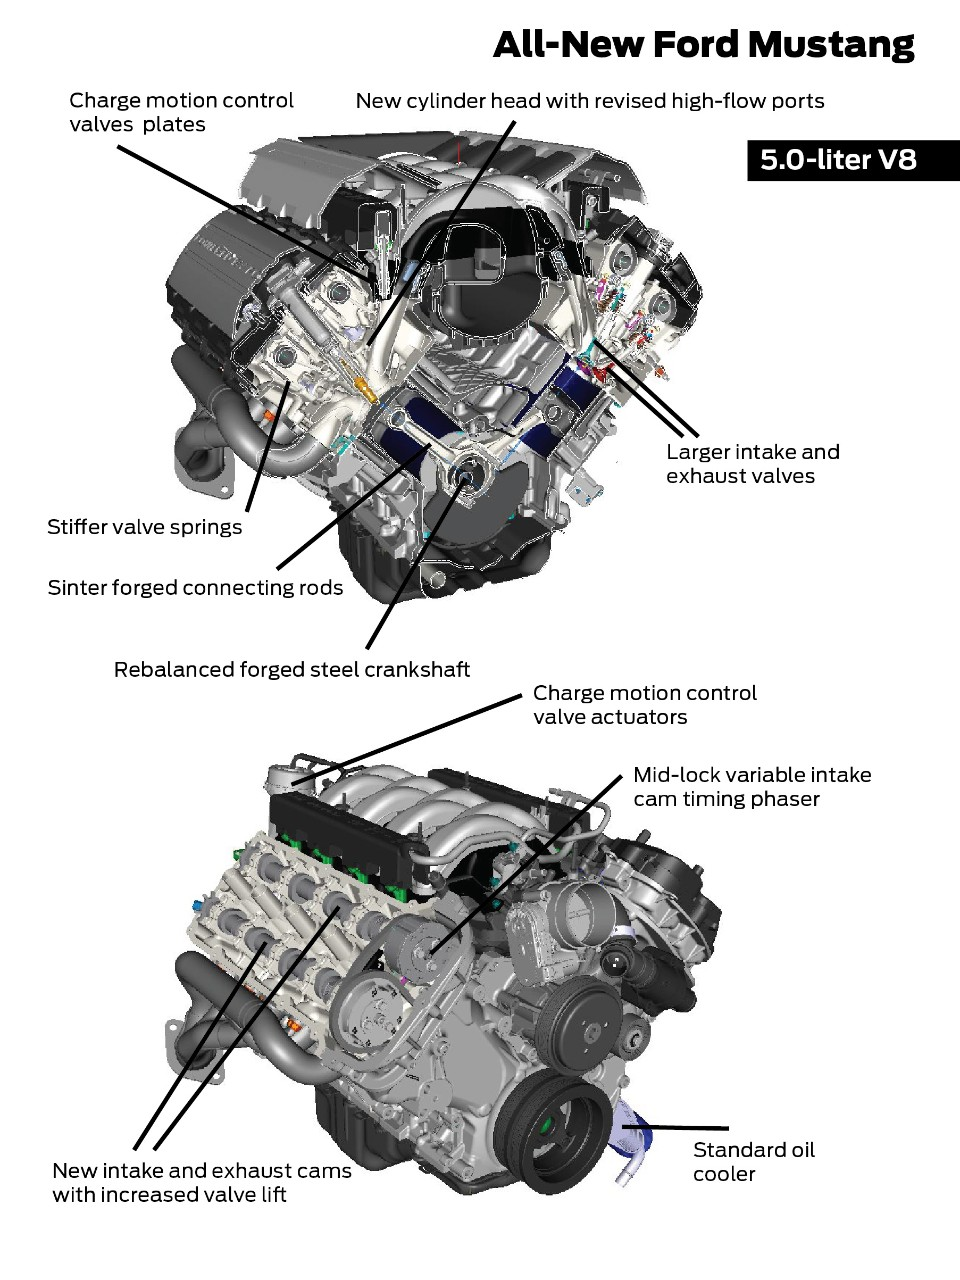 2015 mustang engine specs: 5 0l v8 coyote - 2015 mustang engine specs: 5 0